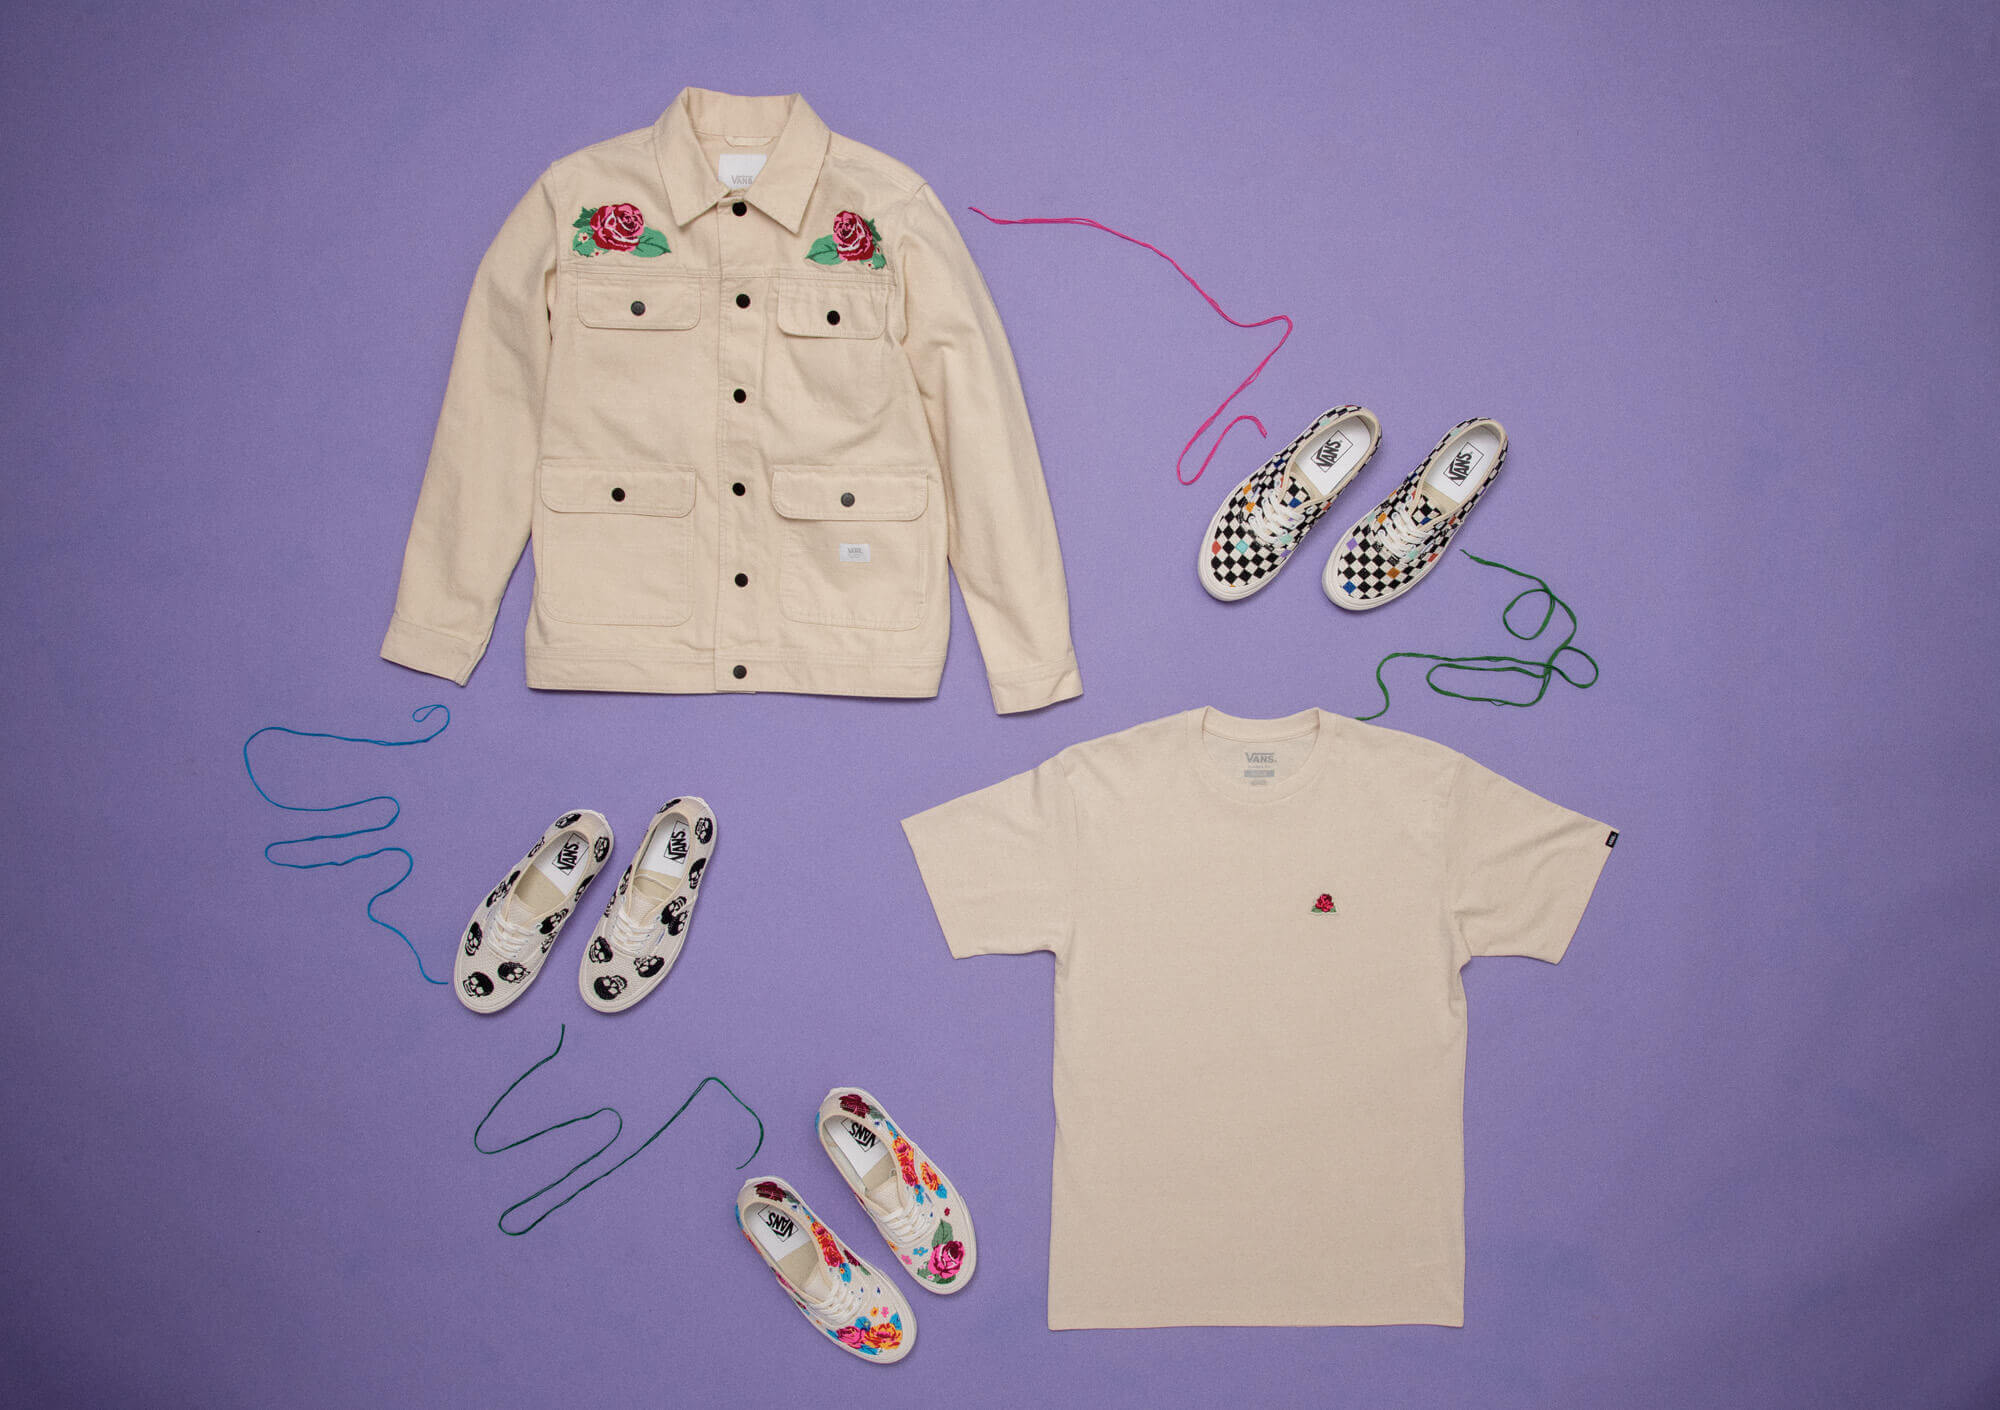 Vans - Anaheim Factory - Needlework Collection - Authentic 44DX and apparel jacket and shirt